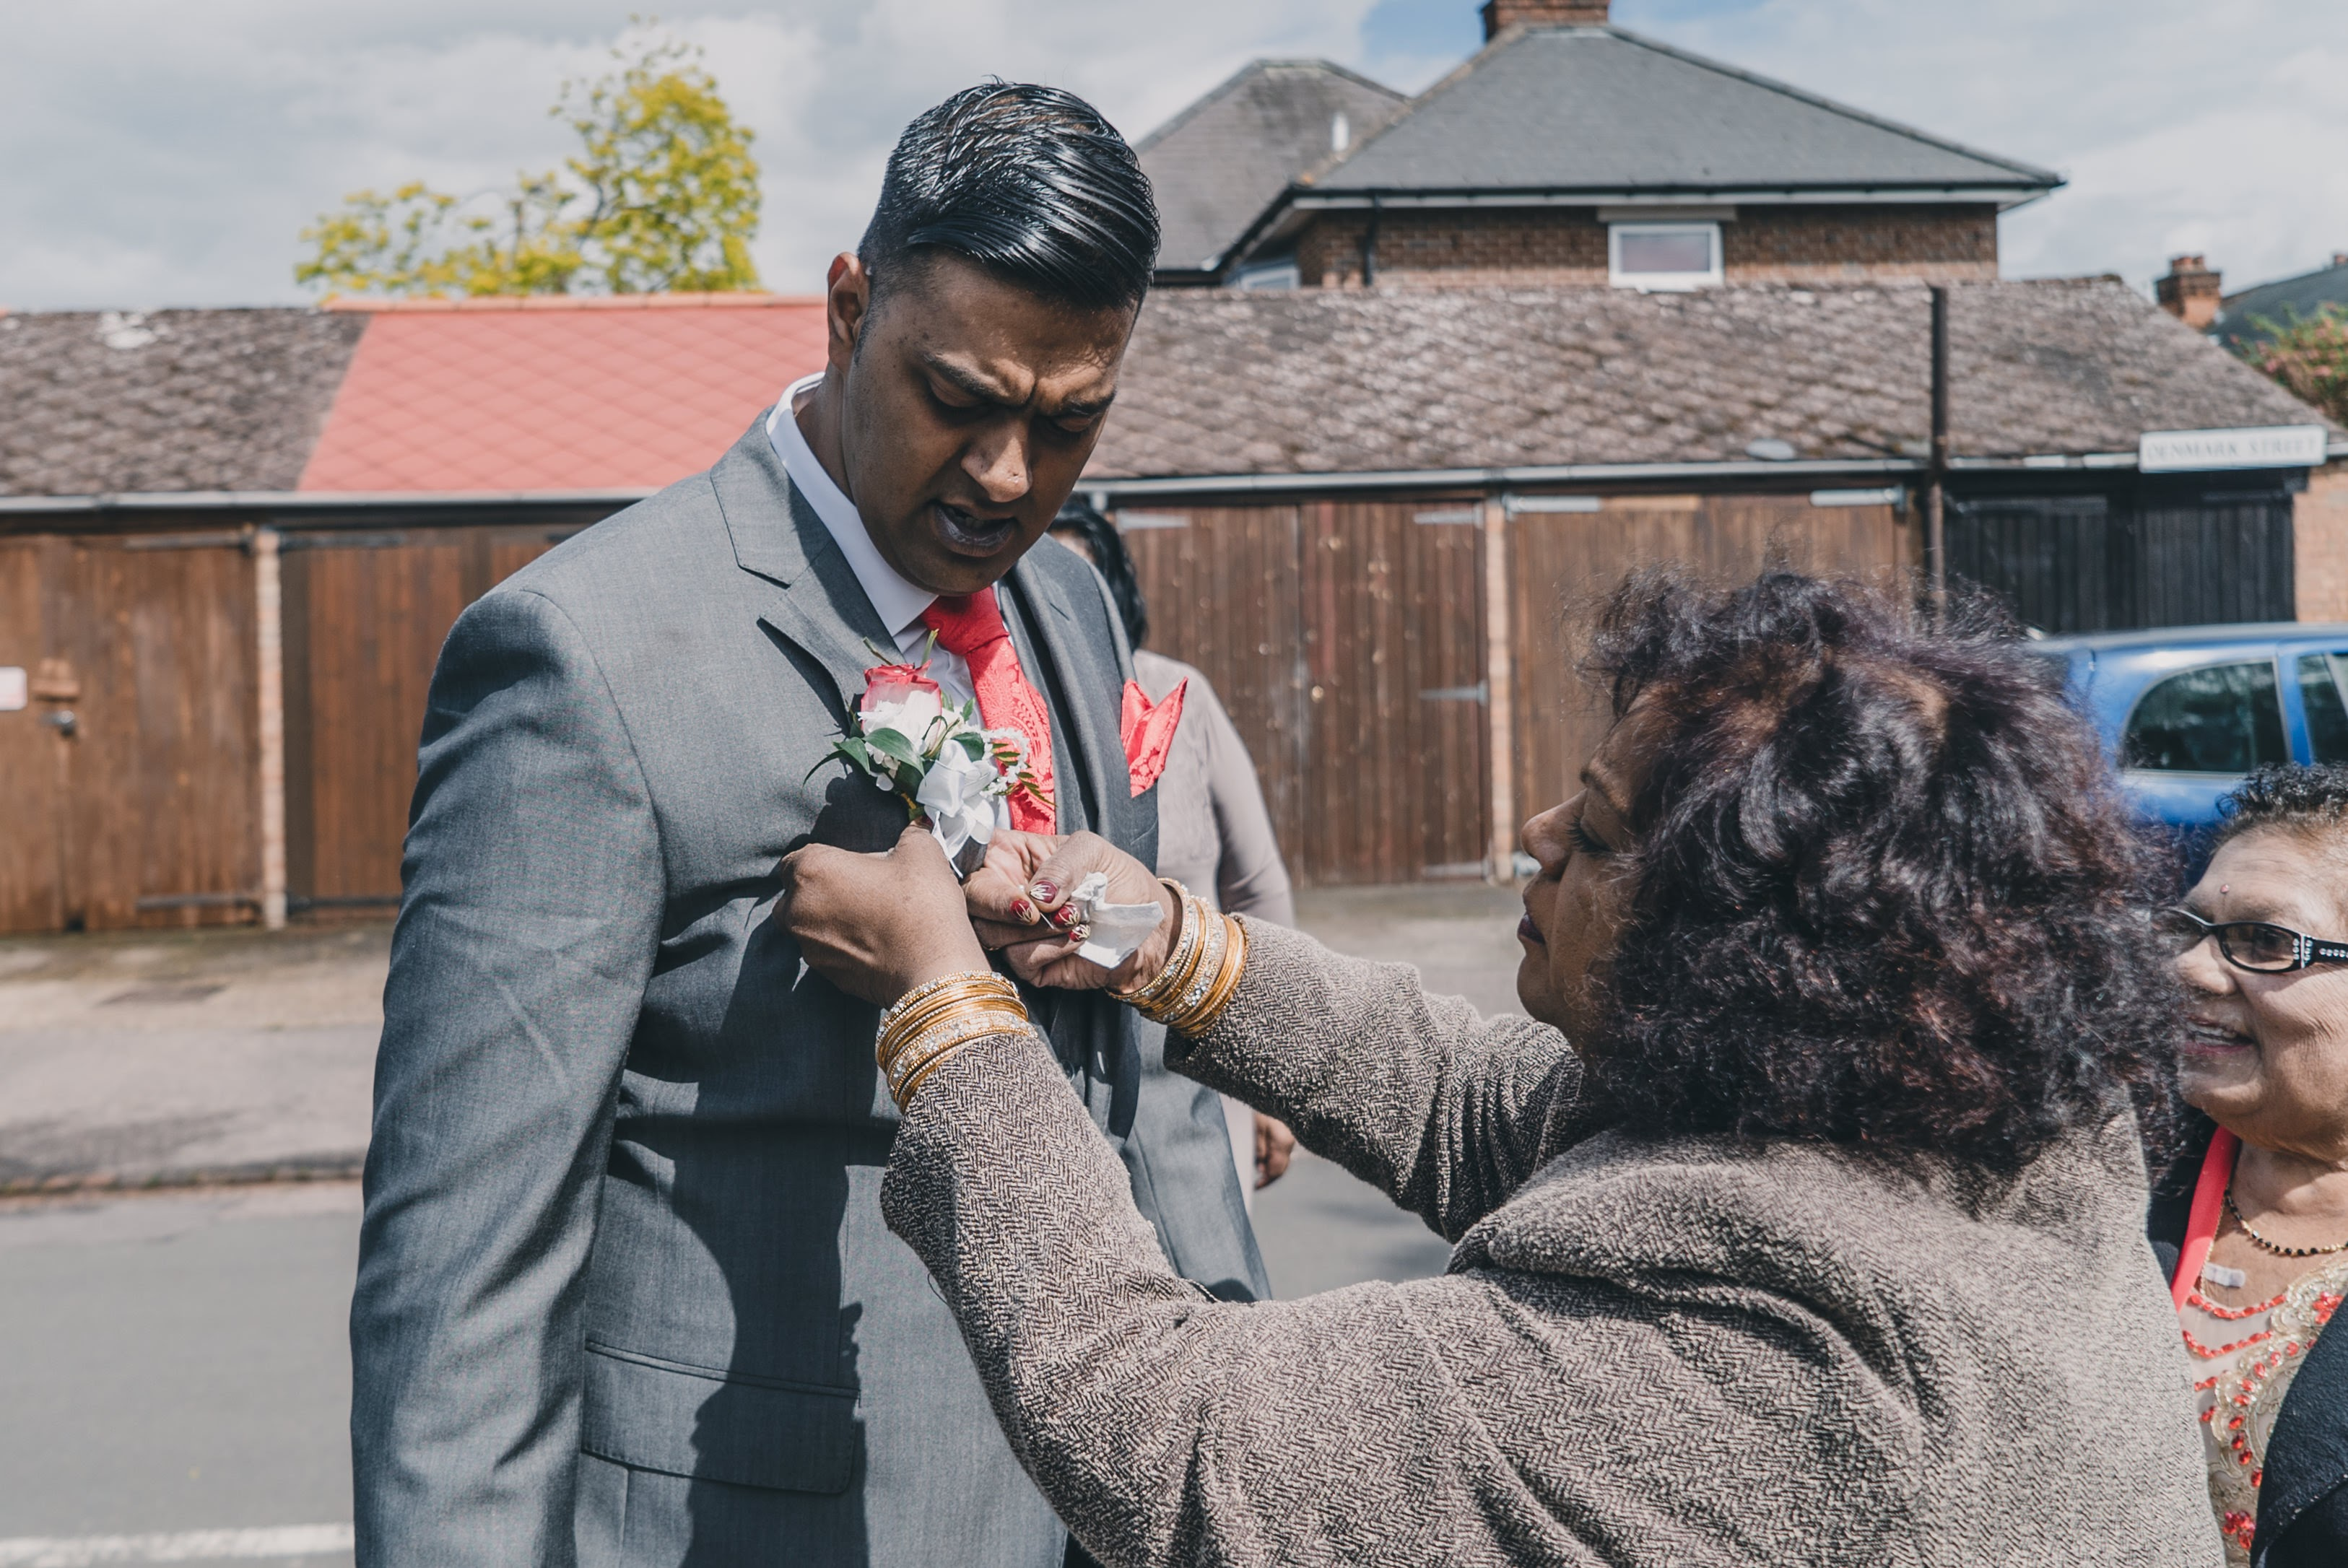 grooms mother putting flower on groom